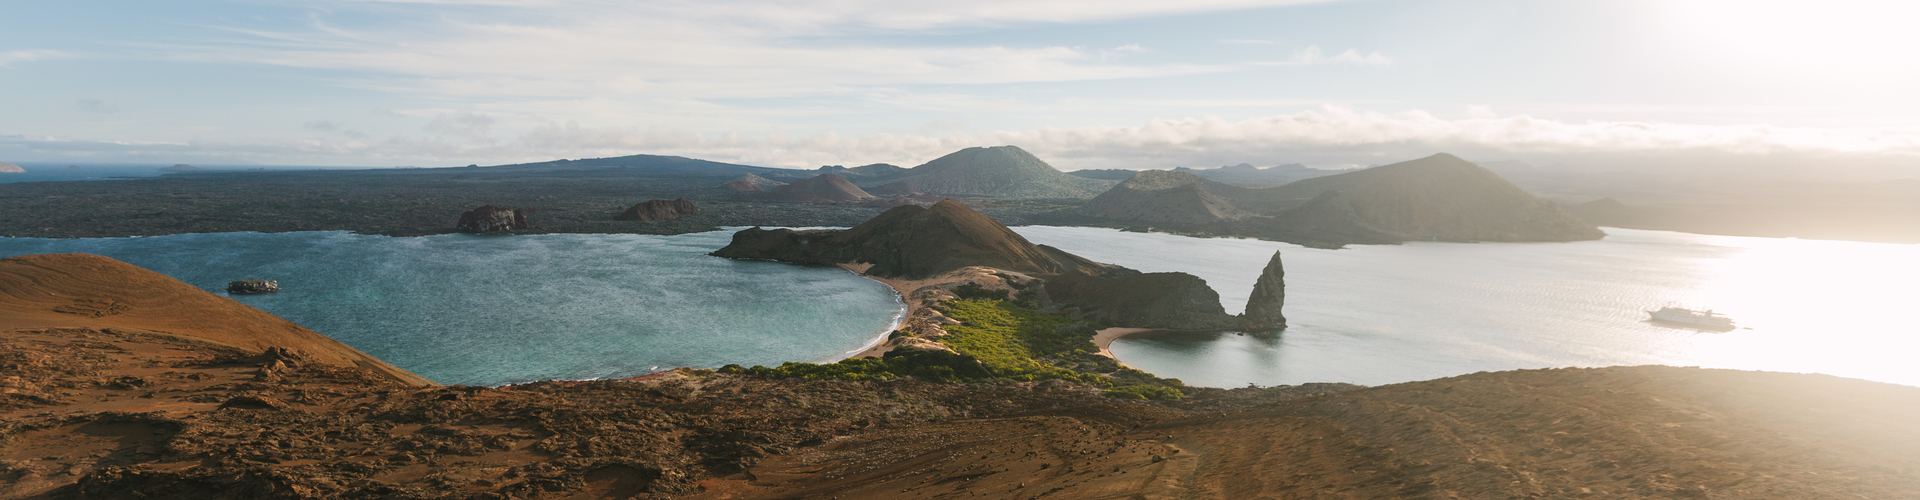 Classic Galapagos – Central Eastern Islands (Grand Queen Beatriz)